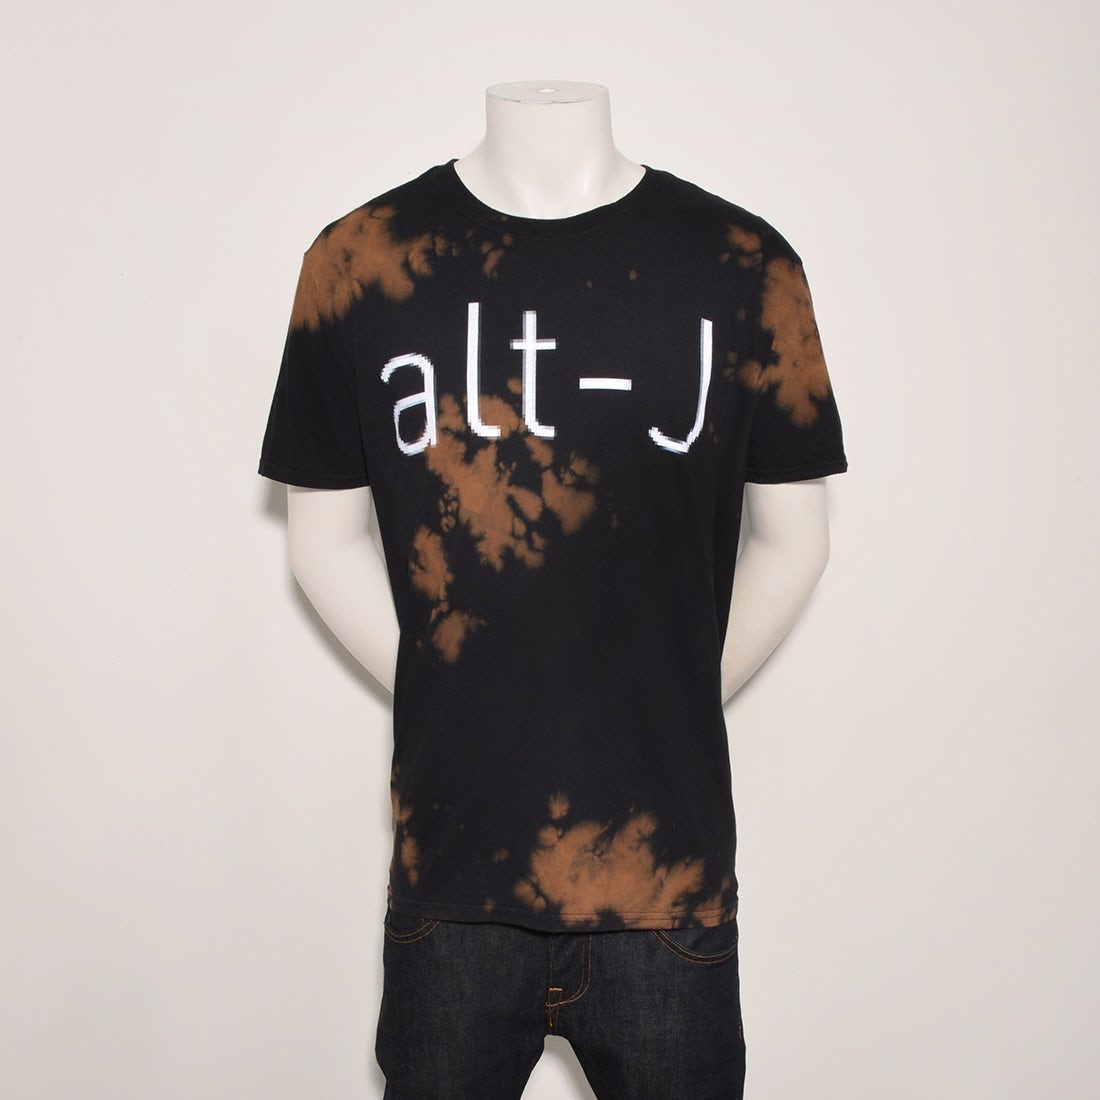 Alt J Merch vinylTour Store TeesHoodies And Accessories Qtrdsh